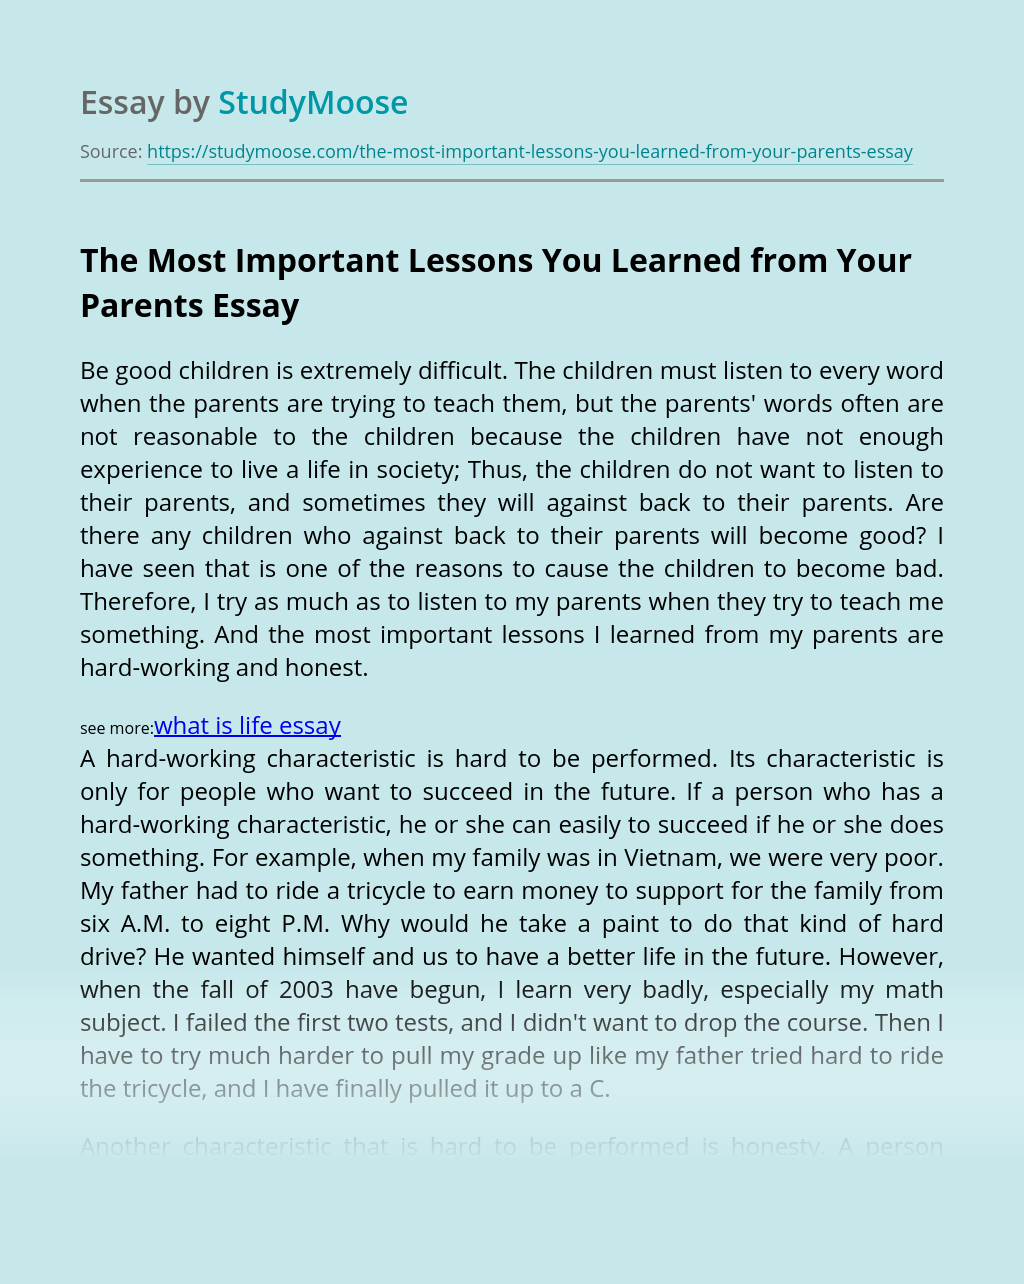 The Most Important Lessons You Learned from Your Parents